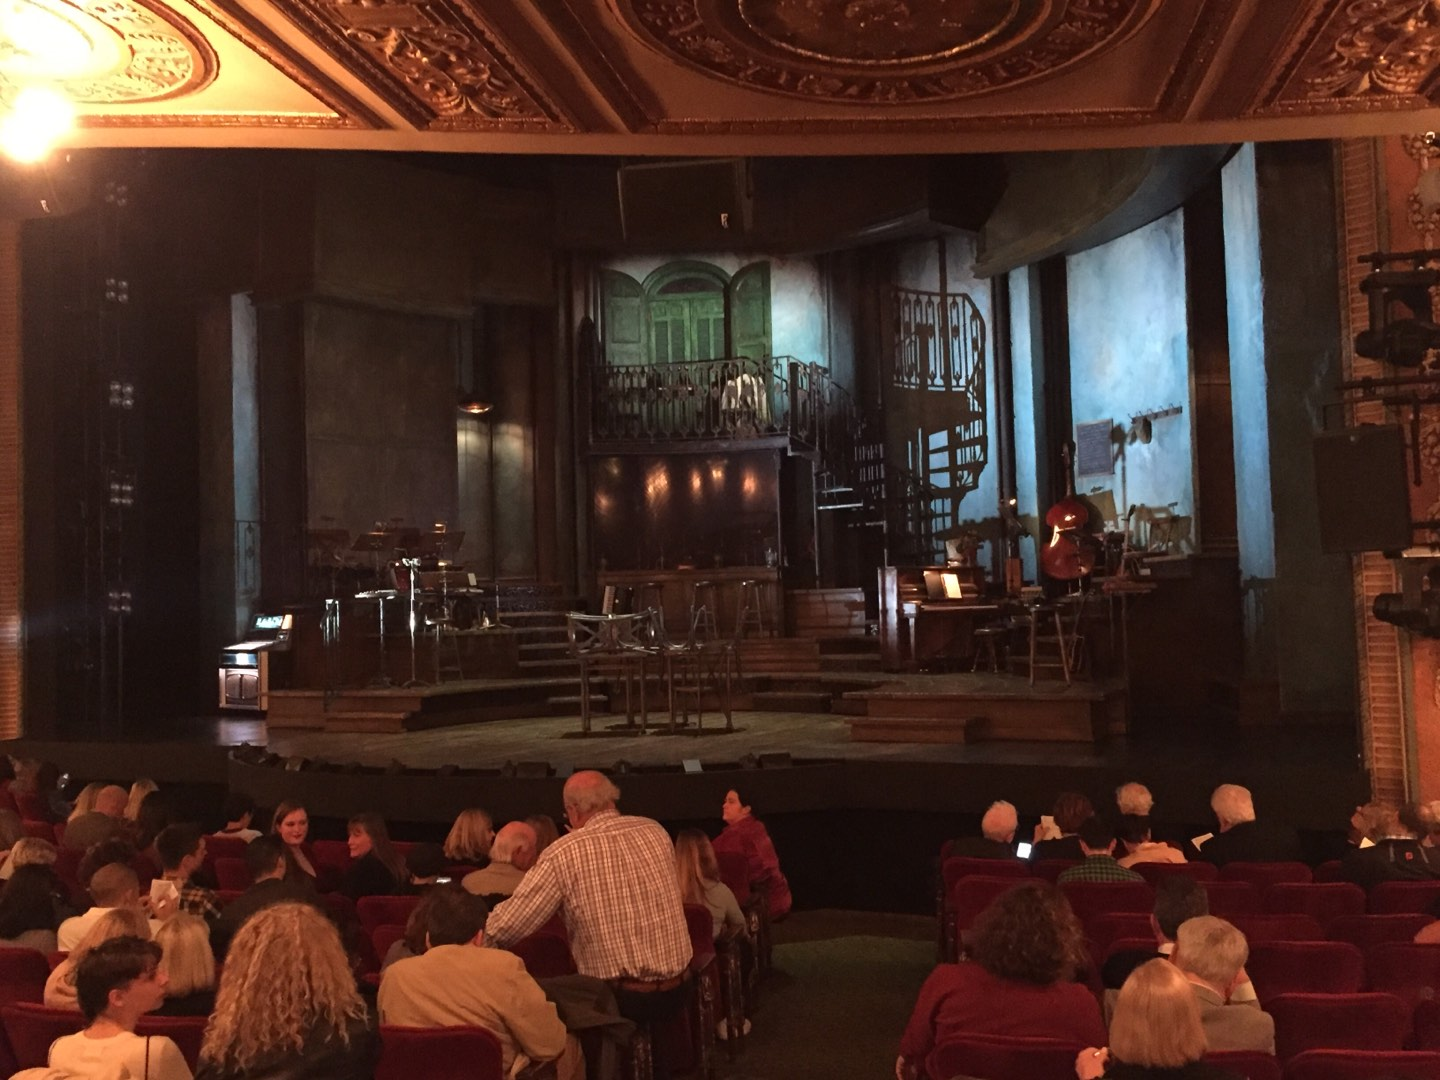 Walter Kerr Theatre Section Orchestra R Row O Seat 8